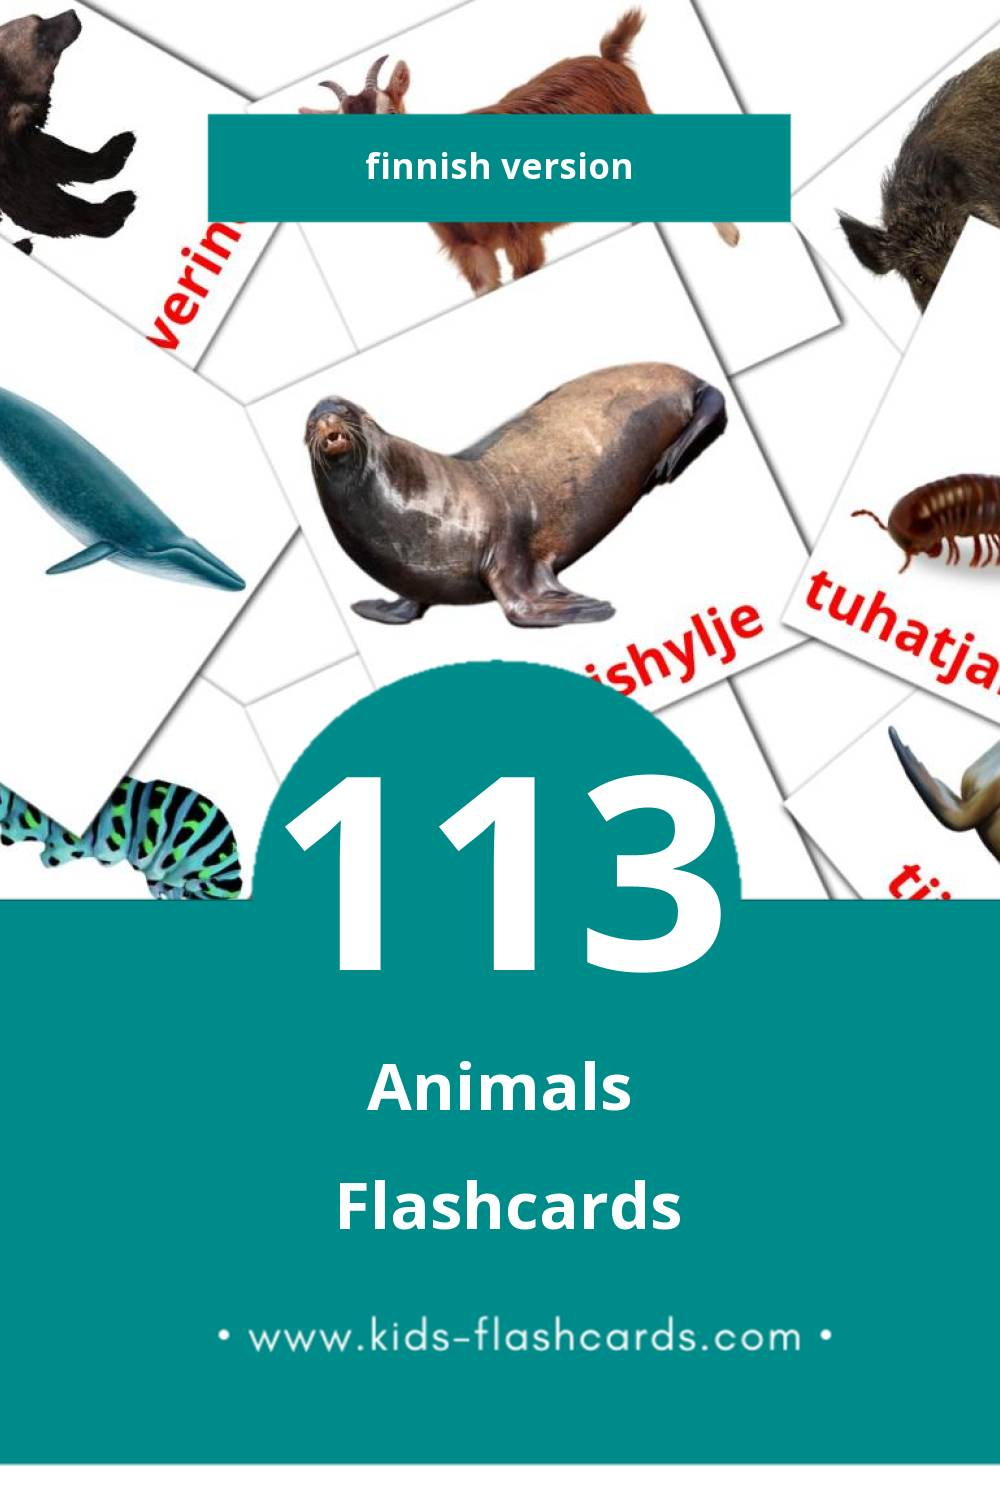 Visual Eläimet Flashcards for Toddlers (25 cards in Finnish)